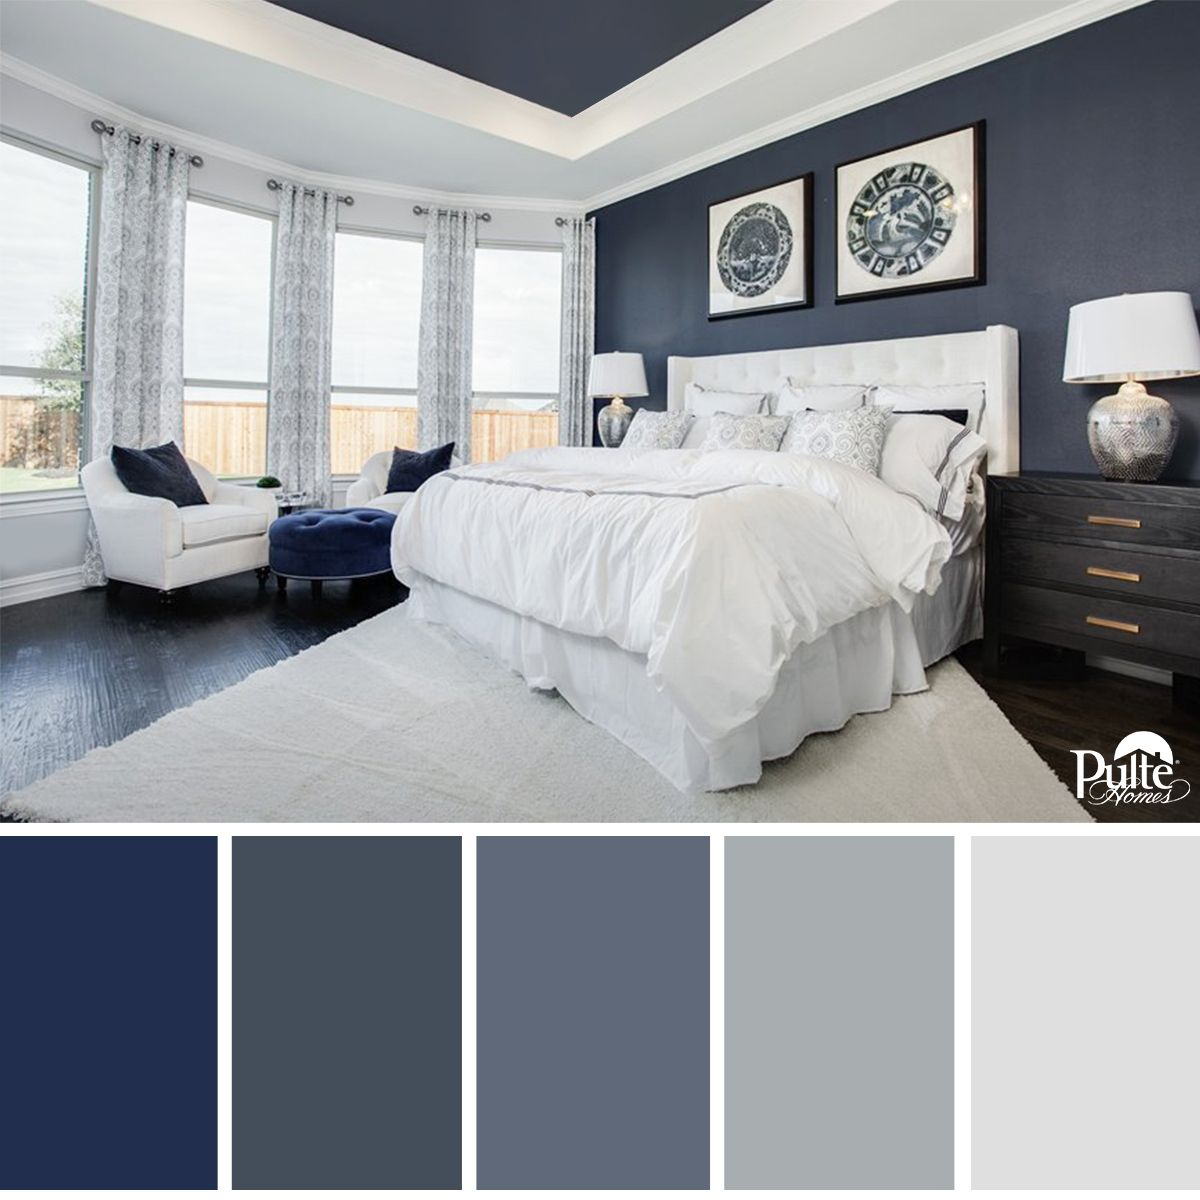 Master Bedroom Paint Colors This Bedroom Design Has The Right Ideathe Rich Blue Color